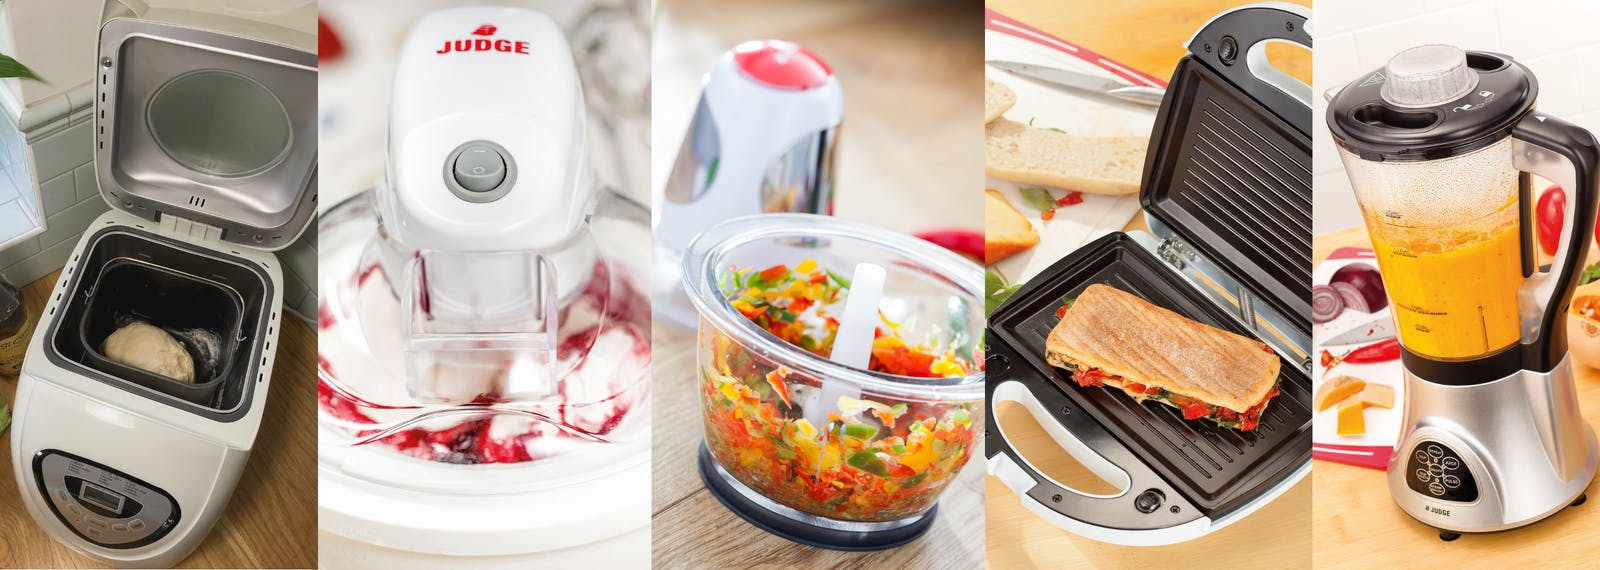 8 kitchen electricals for efficient, healthy, fun family cooking